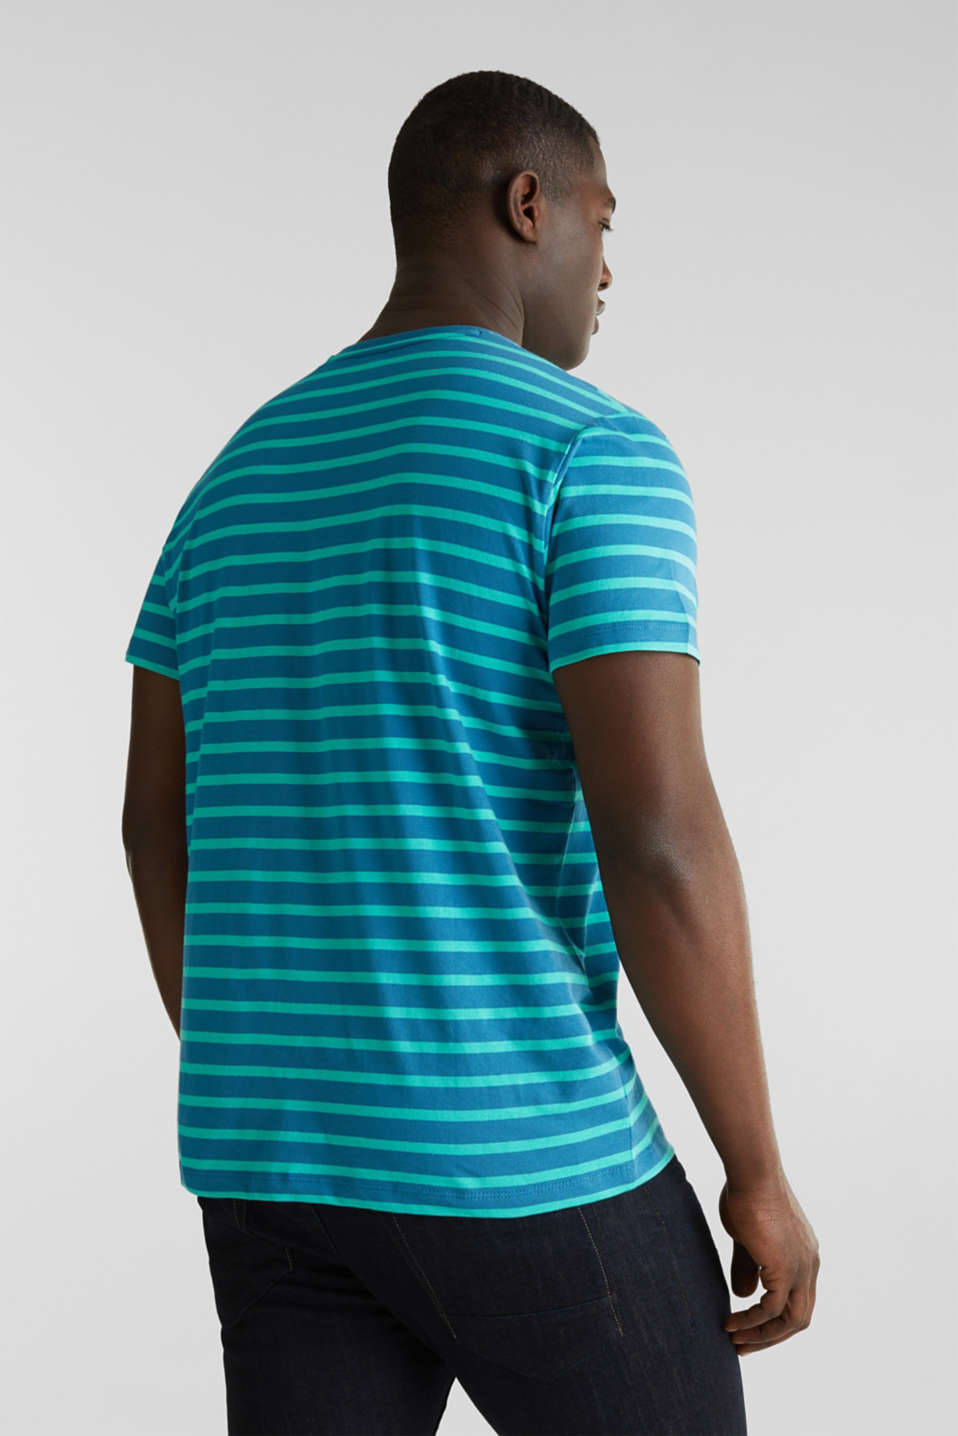 Jersey T-shirt with stripes, 100% cotton, PETROL BLUE 3, detail image number 3